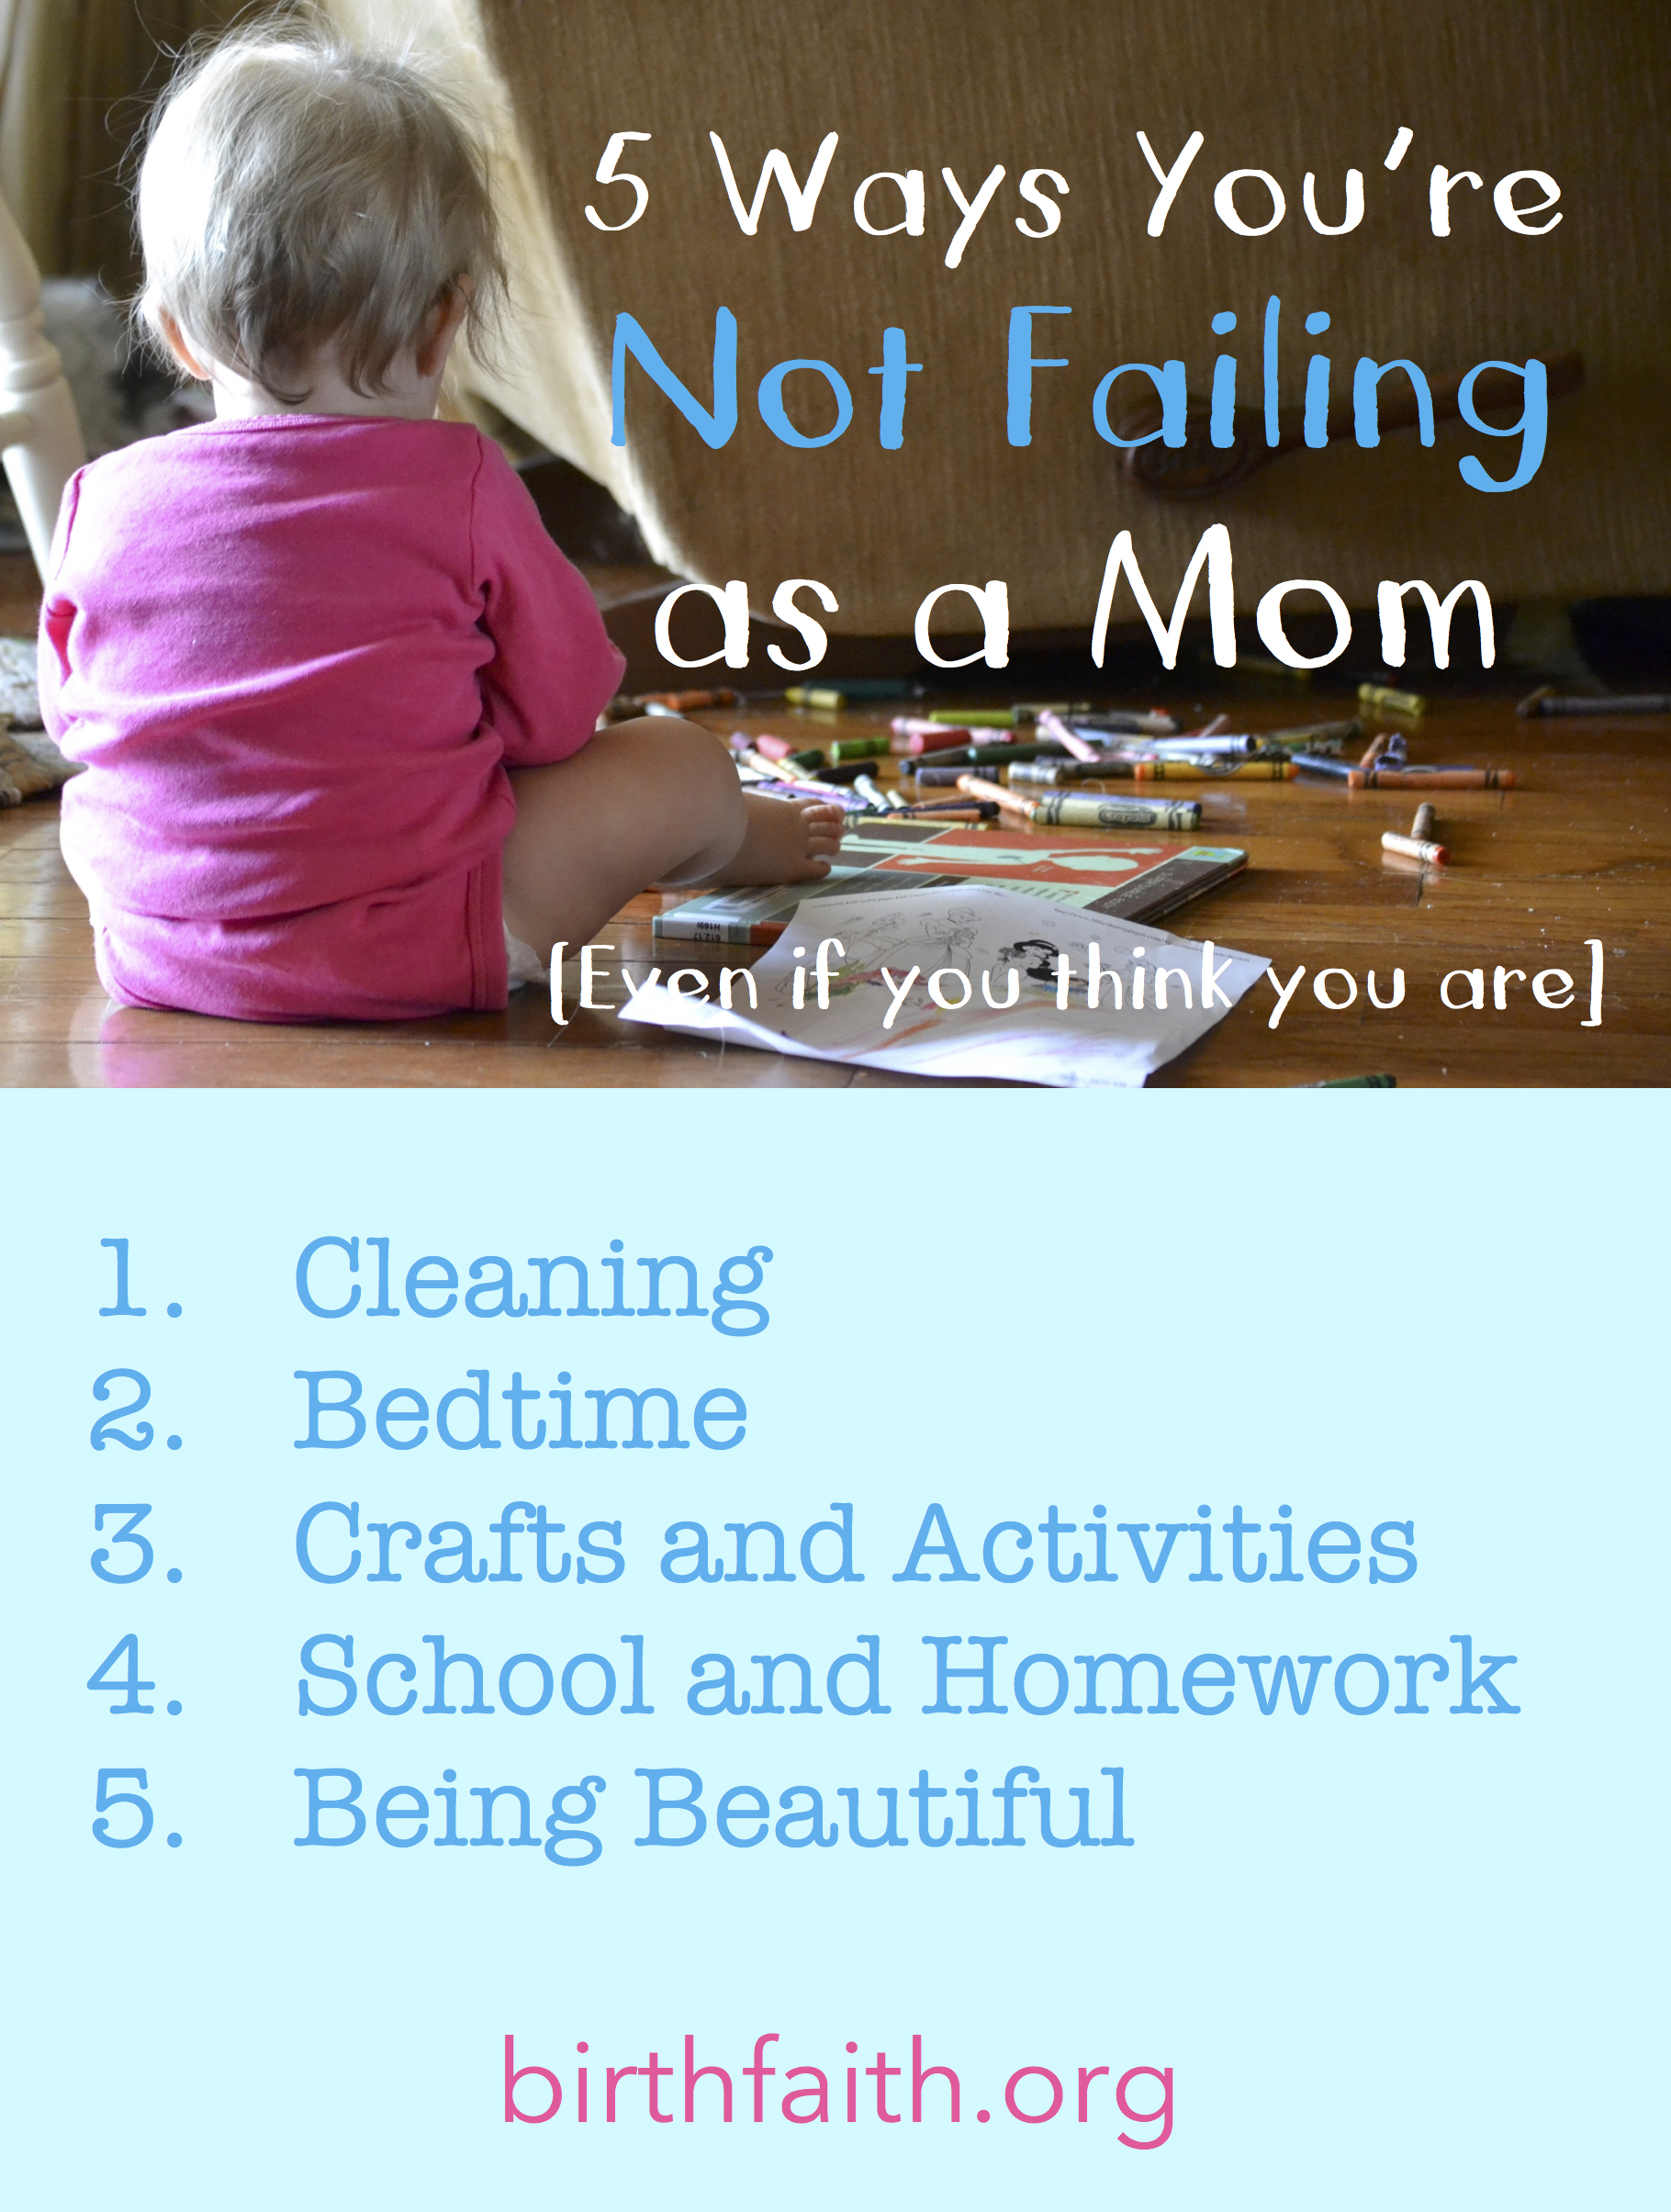 Birth faith a better birthing experience part 3 5 ways you arent failing as a mom2 fandeluxe